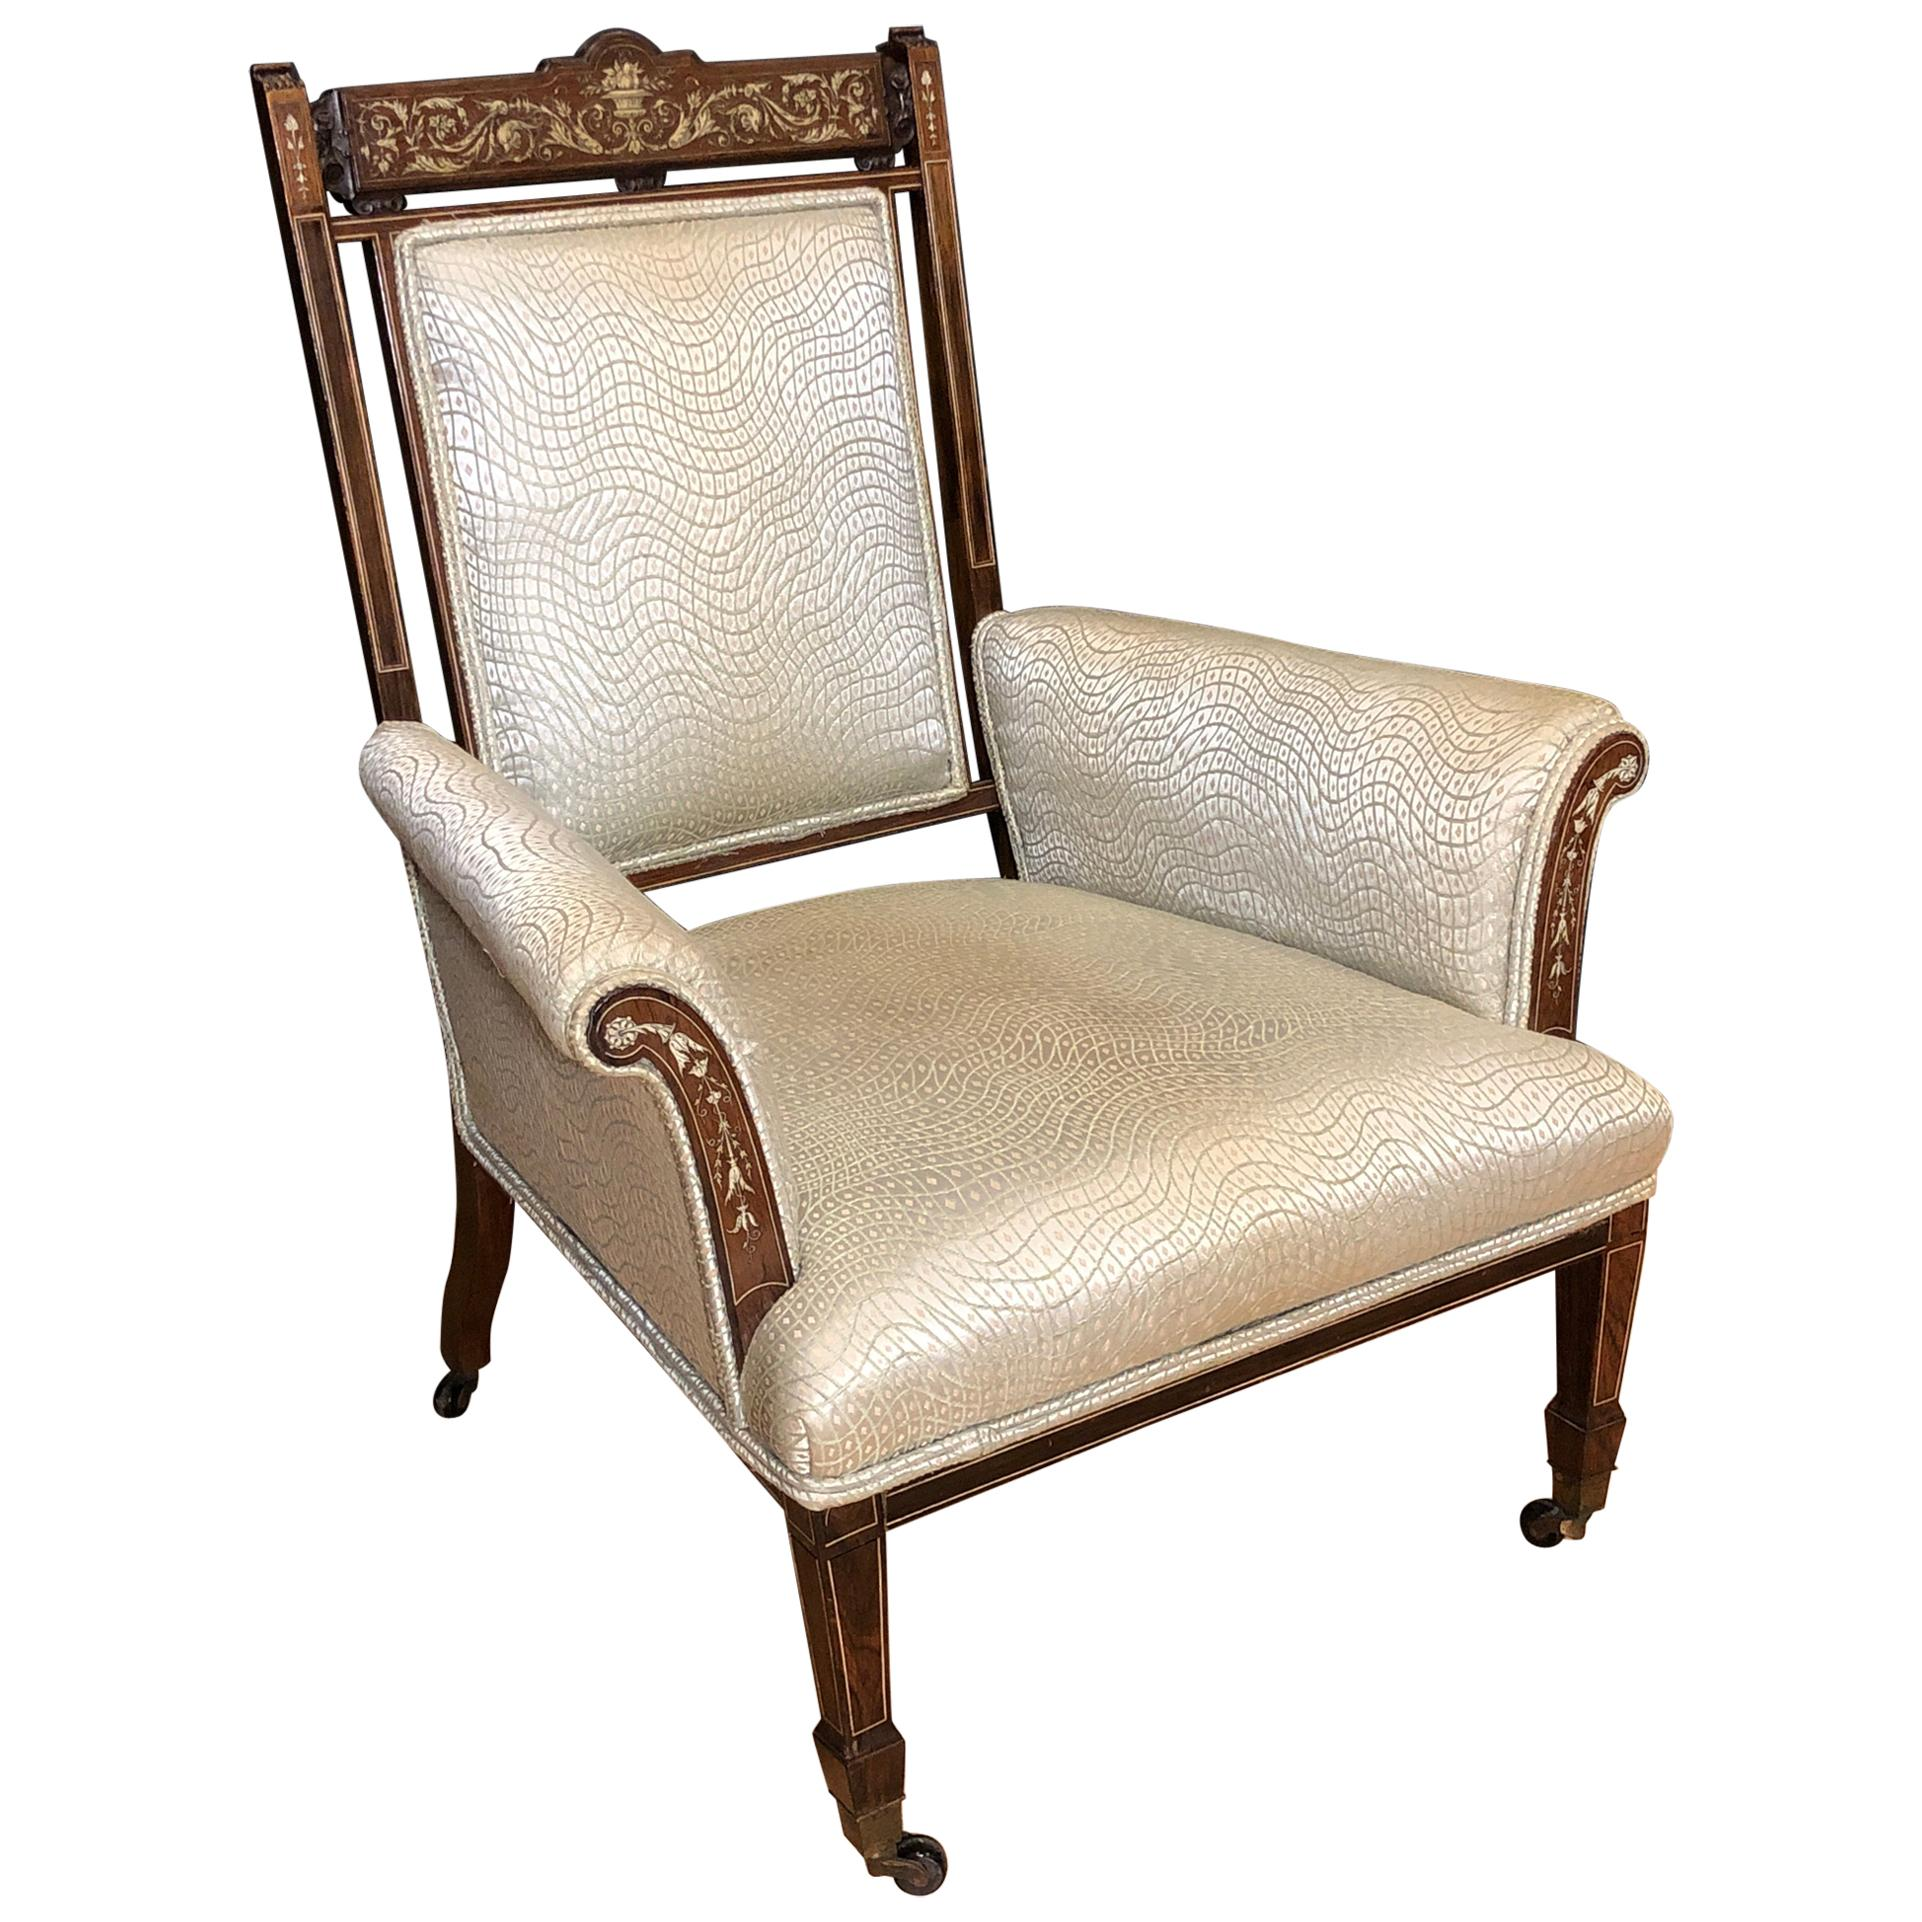 Italian Inlaid Marquetry and Rosewood Armchair